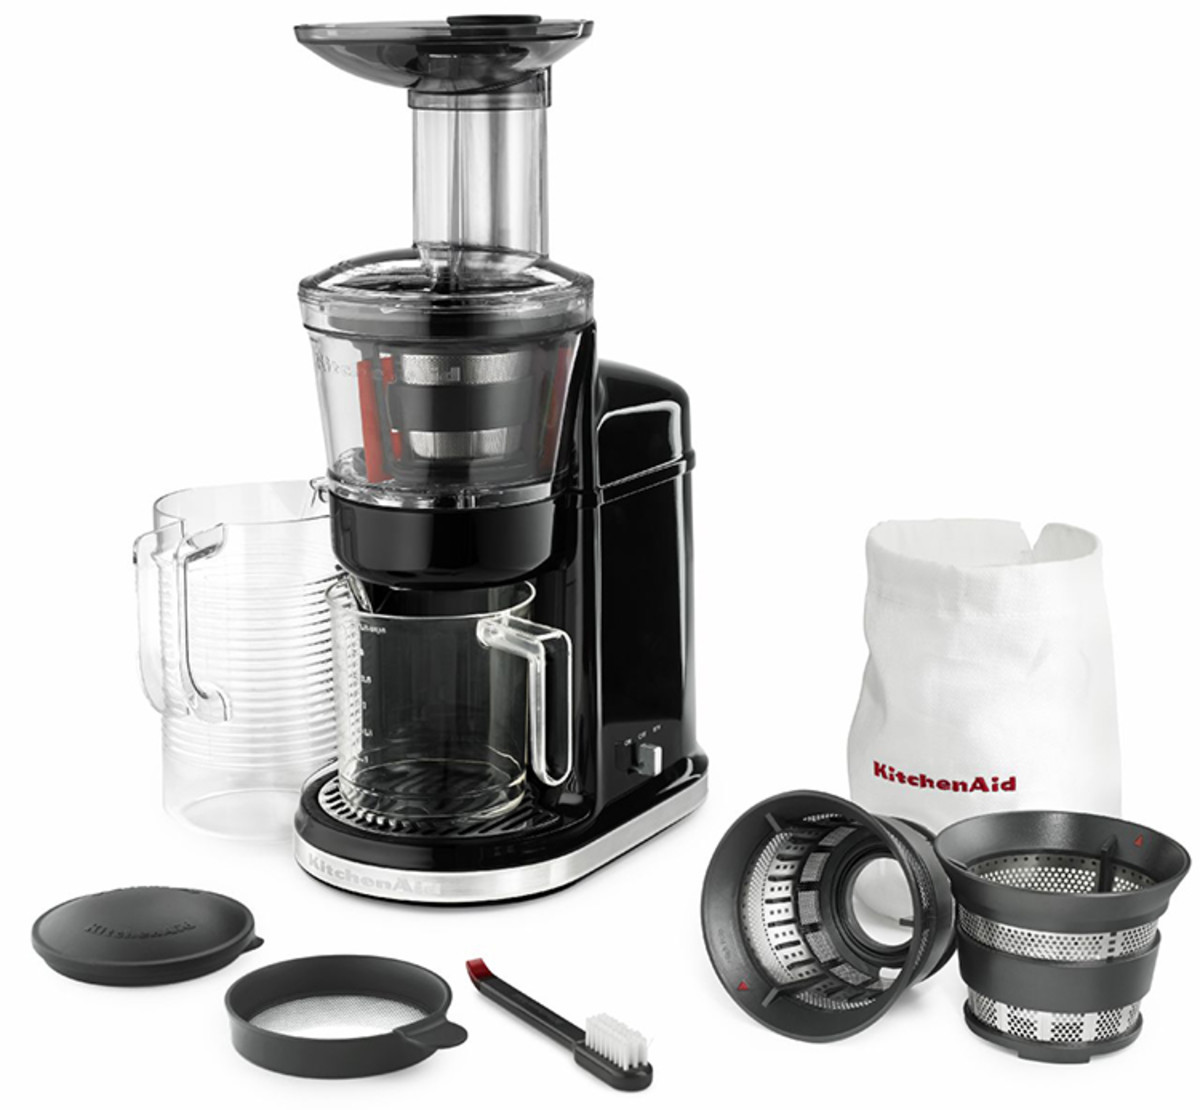 Enter to Win: The KitchenAid Maximum Extraction Juicer, More Juice and Less Prep [$500 Value]